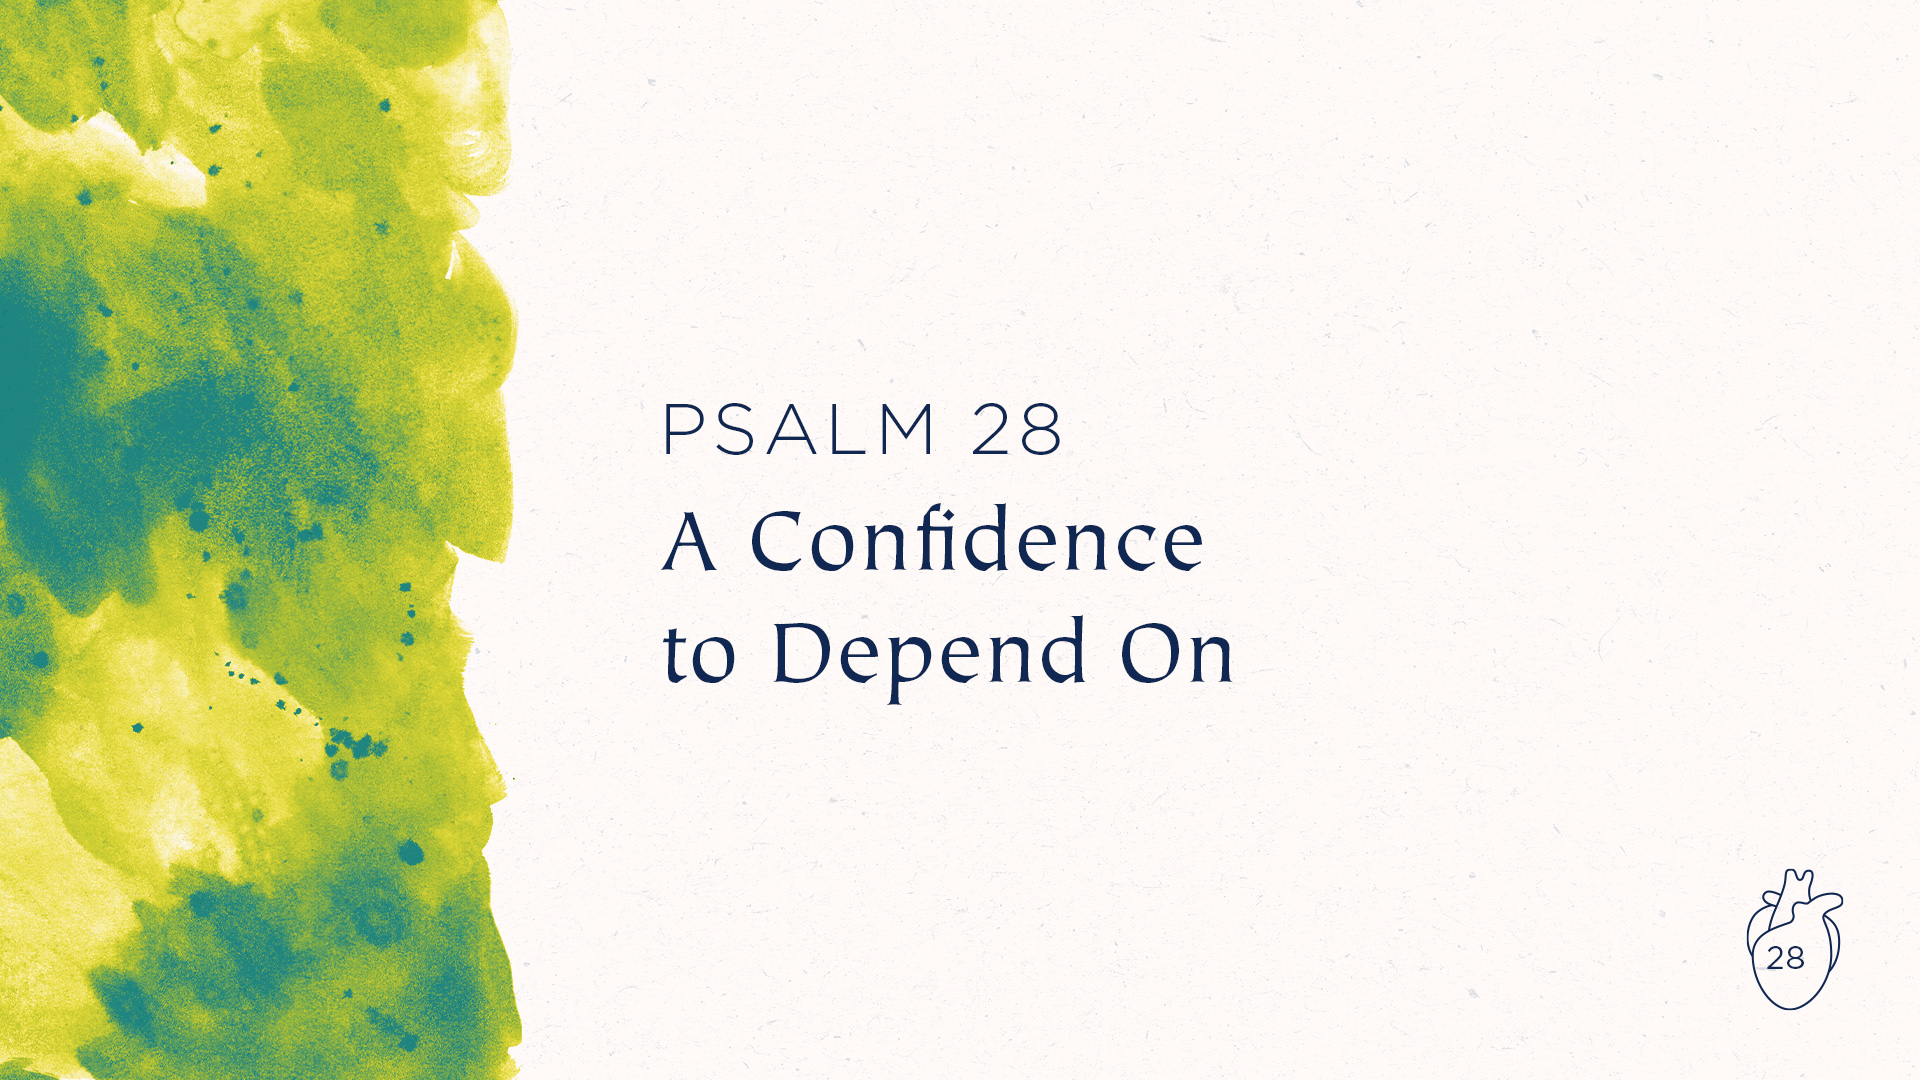 A Confidence to Depend On